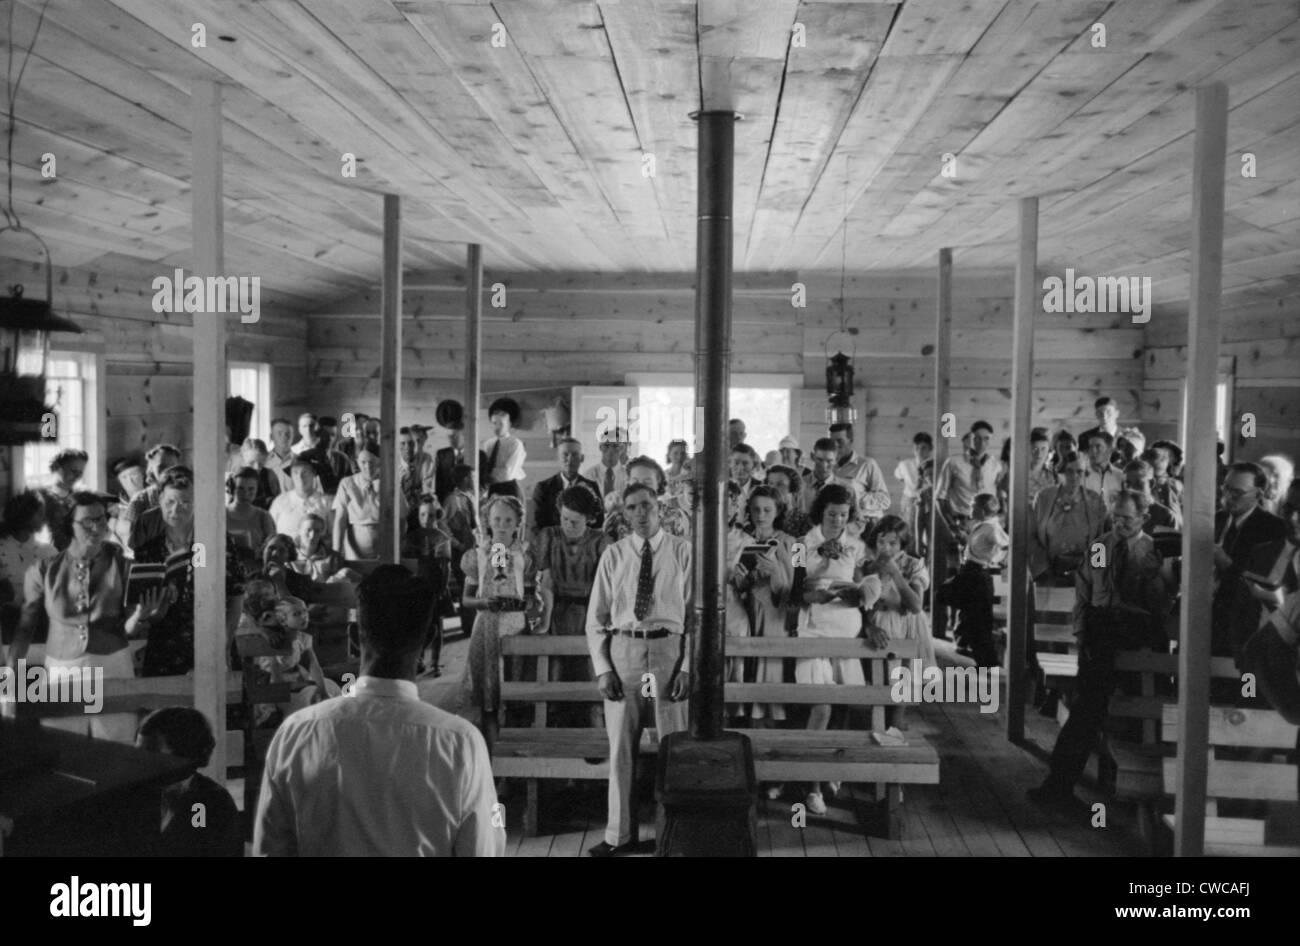 Religious service in the Pie Town, New Mexico church. Pie town was settled in the 1930's by 250 homesteader families Stock Photo